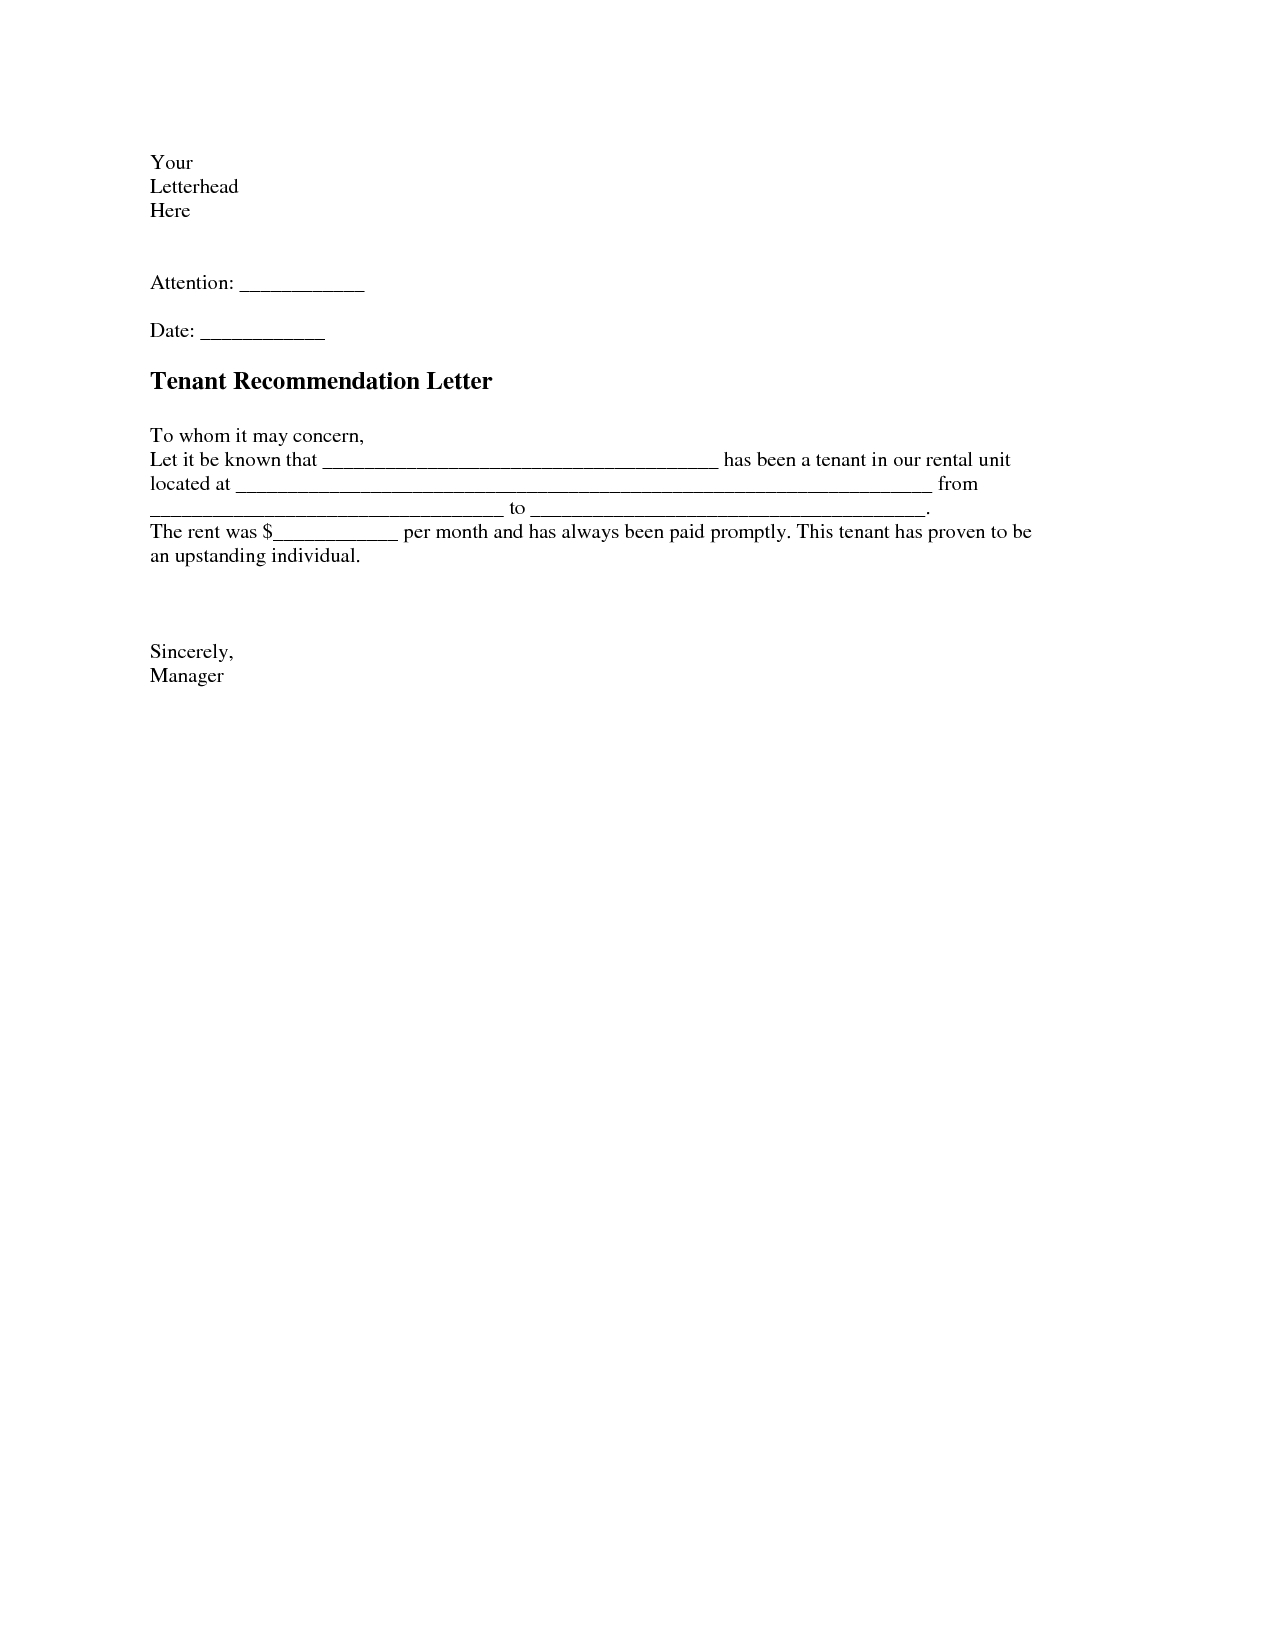 Free Rental Reference Letter Template - Tenant Re Mendation Letter A Tenant Re Mendation Letter is